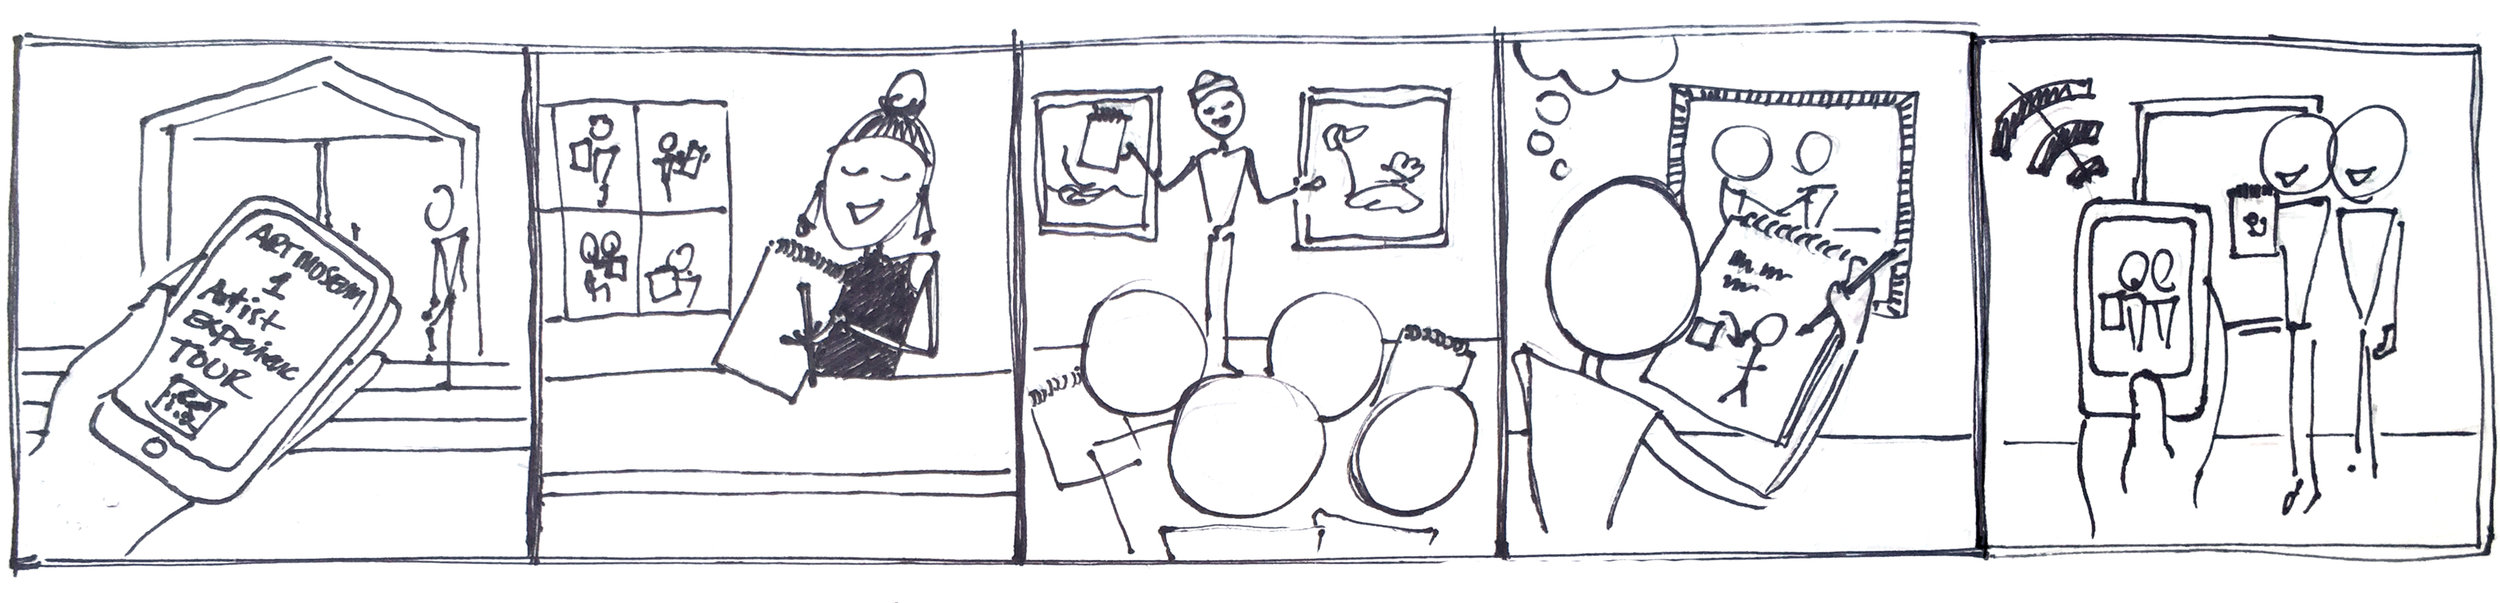 A storyboard prototype of an interactive museum experience.